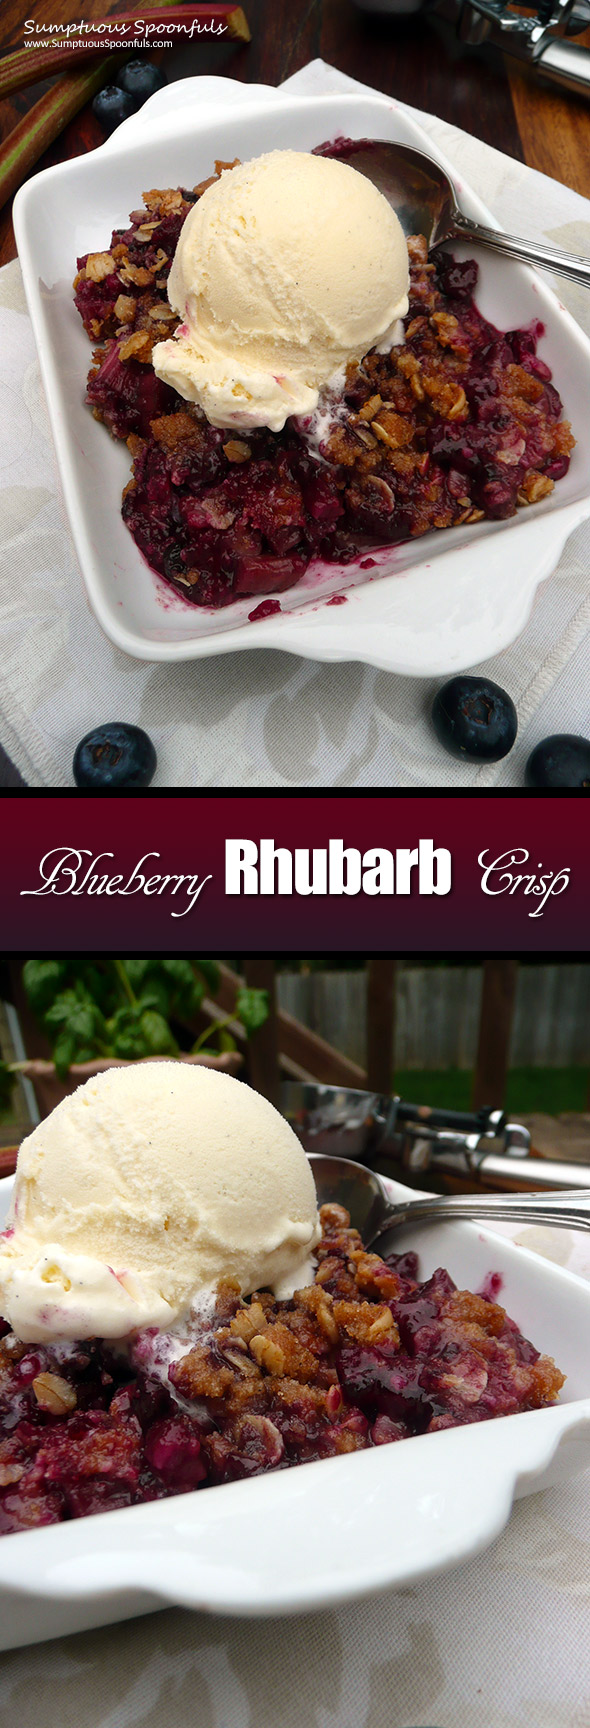 Blueberry Rhubarb Crisp ~ Sumptuous Spoonfuls #easy #blueberry #rhubarb #dessert #recipe